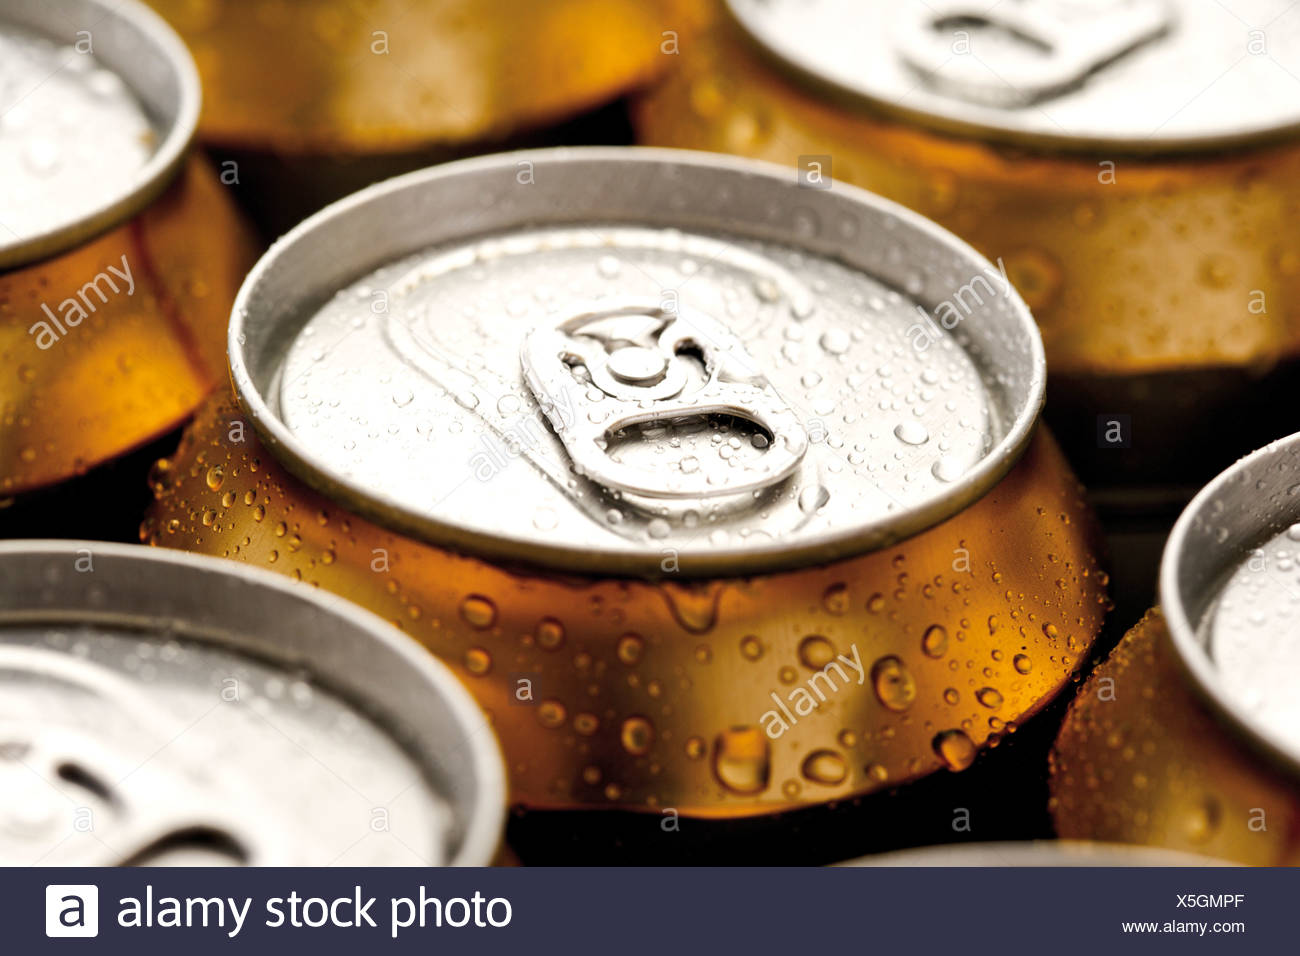 Beer cans, close-up - Stock Image